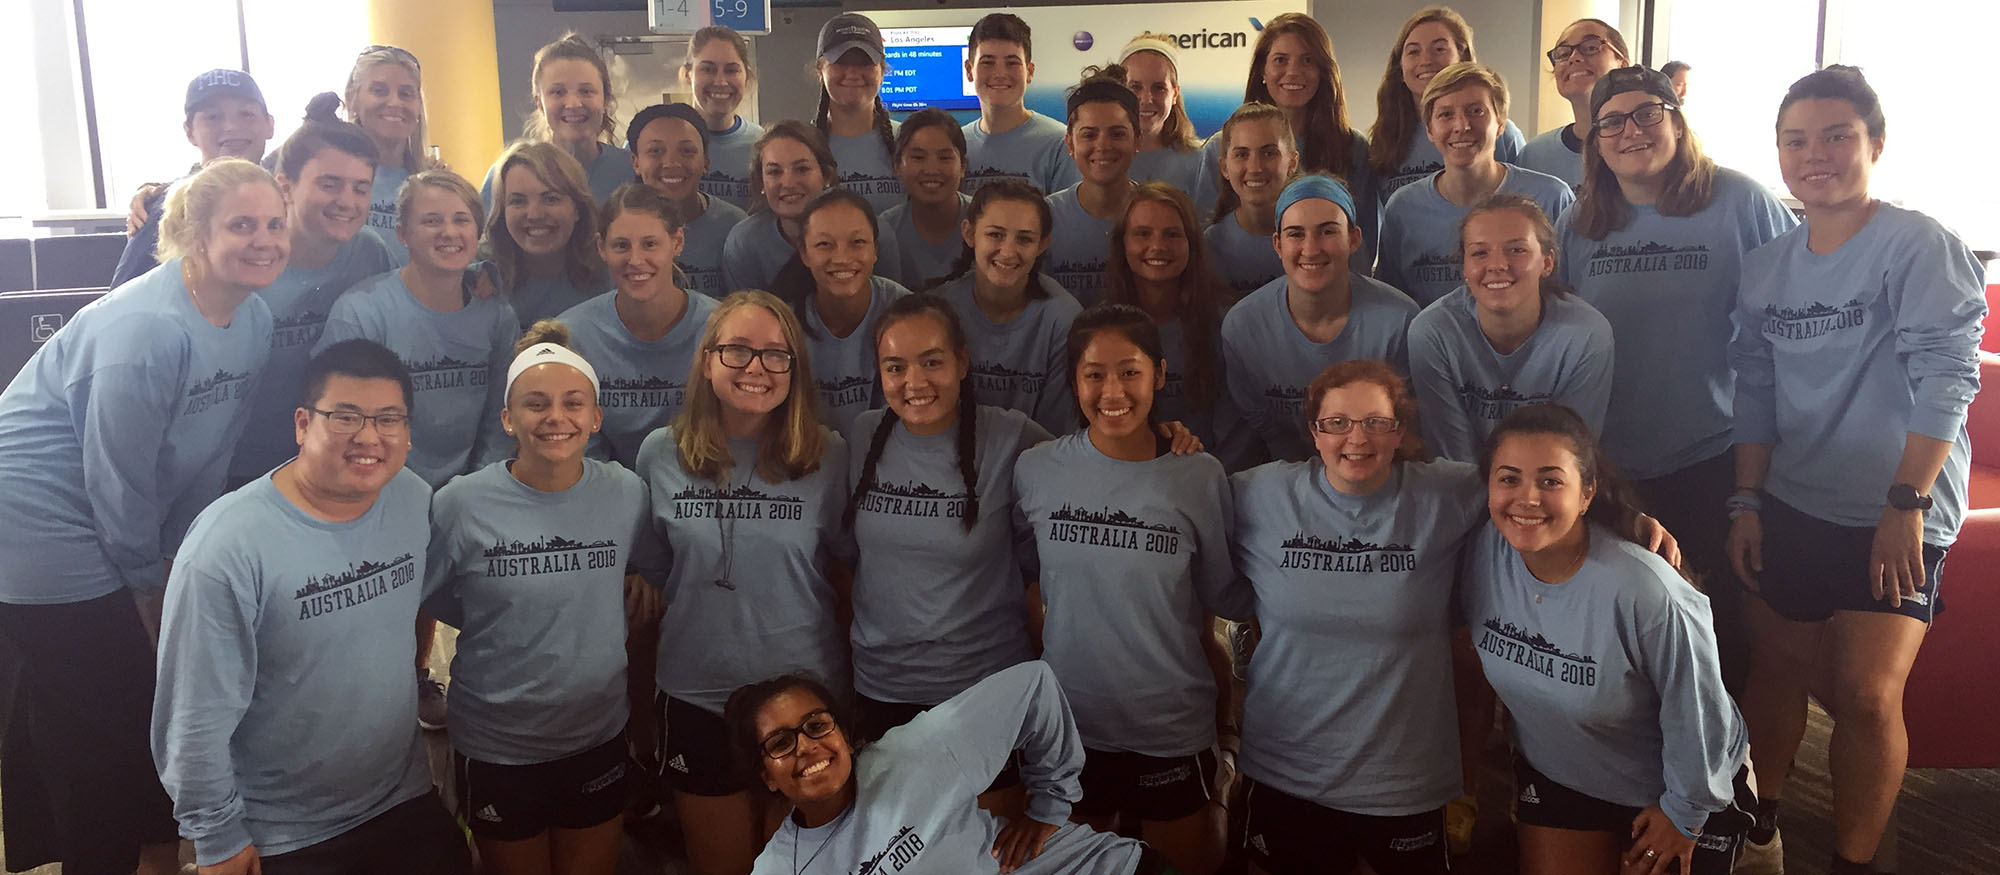 The Lyons field hockey team gathers for a photo prior to their departure to Australia from Boston's Logan Airport on Sunday, August 19th, 2018.